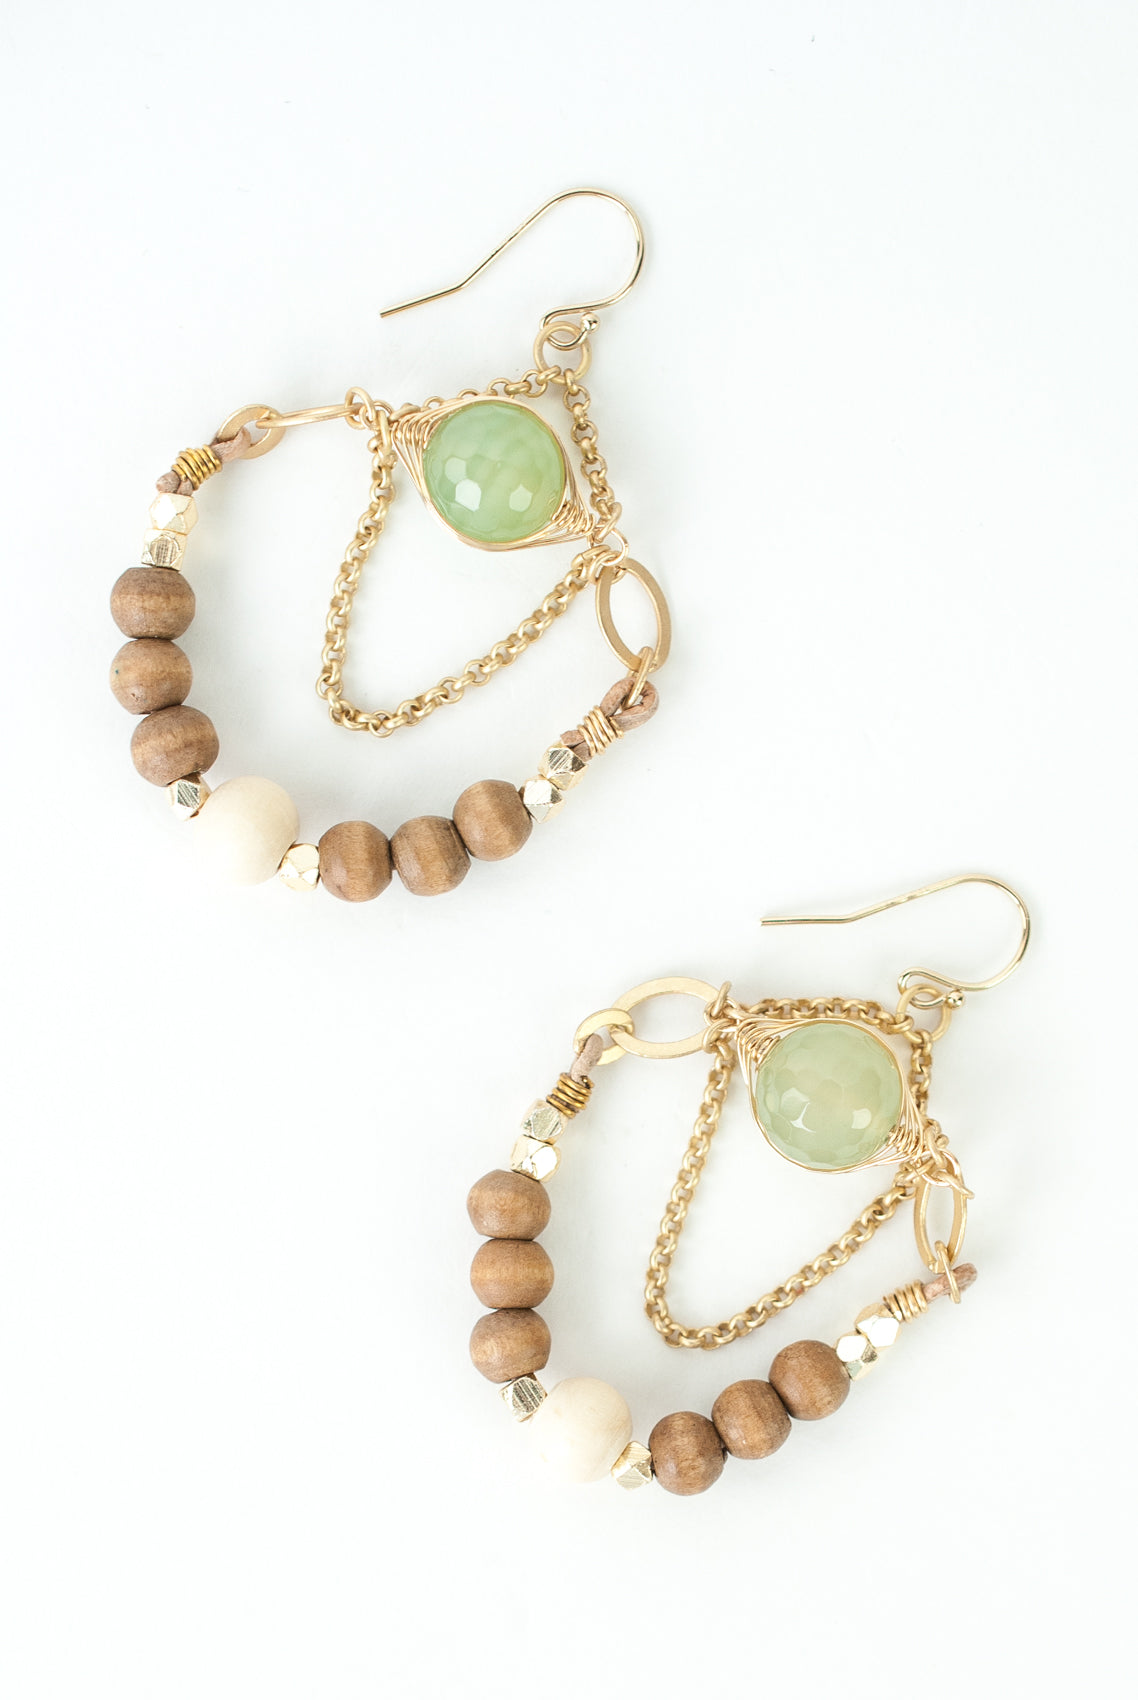 Limited Edition Wood, Vintage Glass, Leather Chandelier Earrings